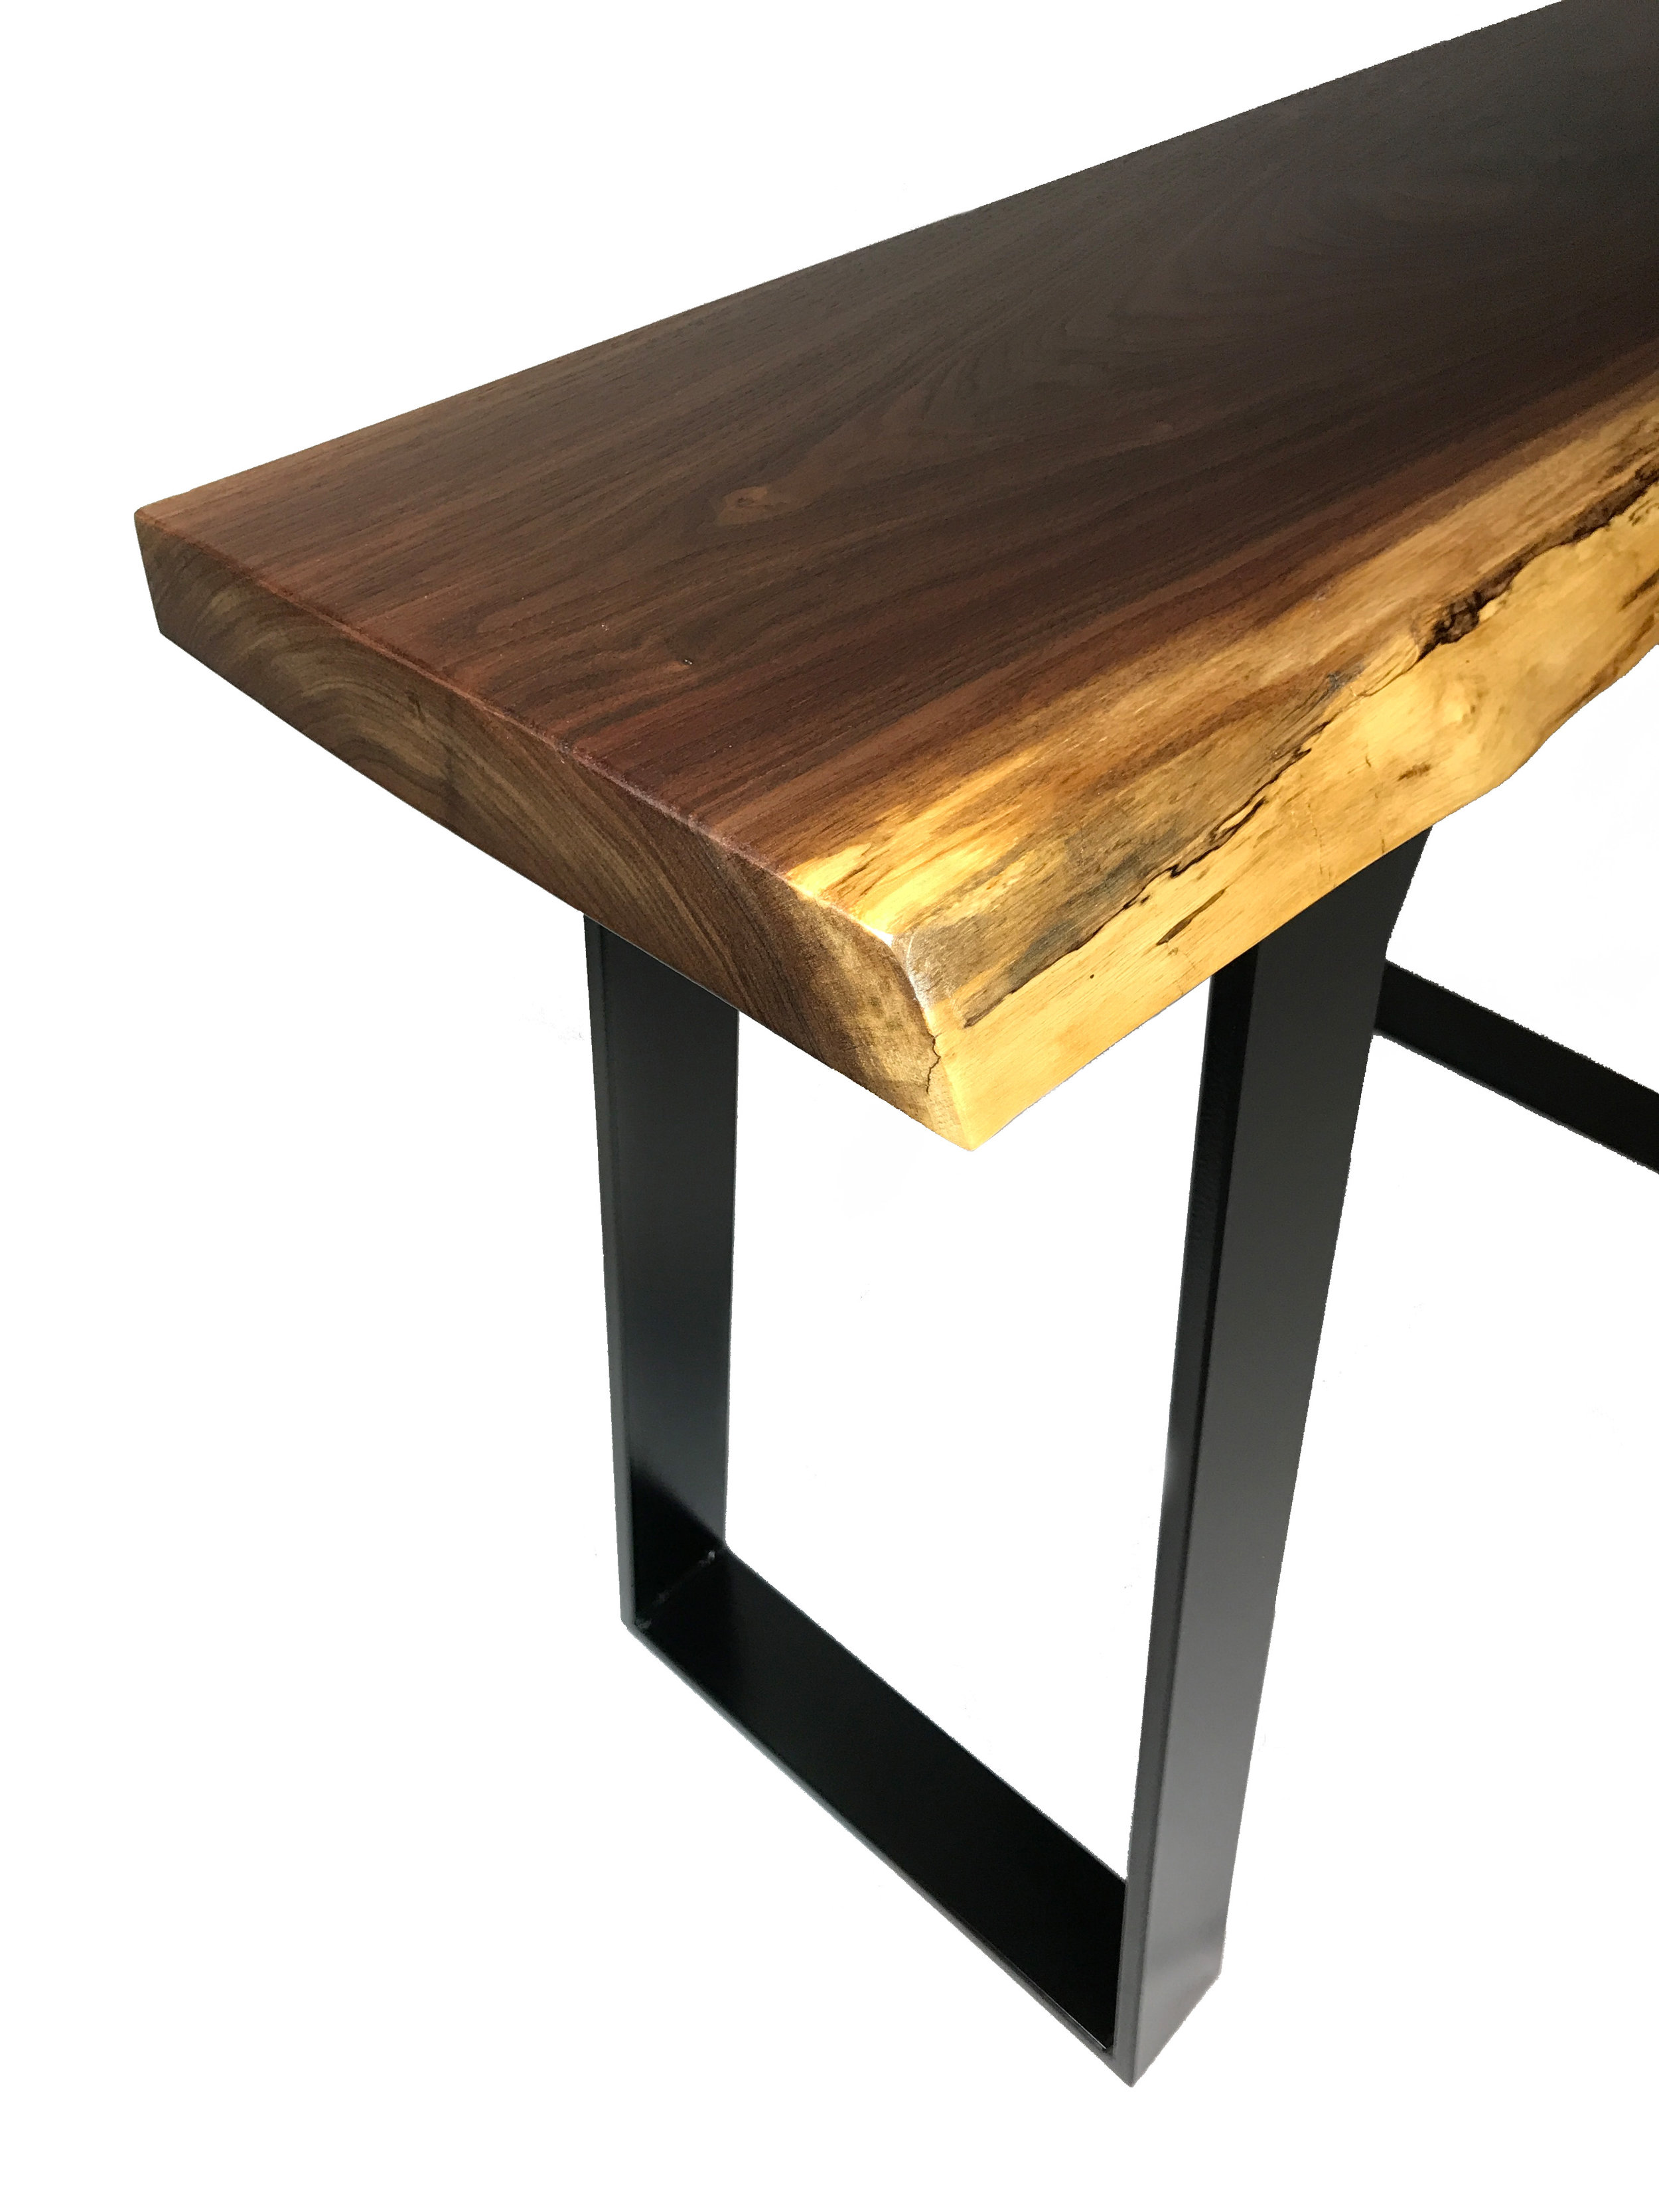 Live Edge Walnut Console Table Corner View